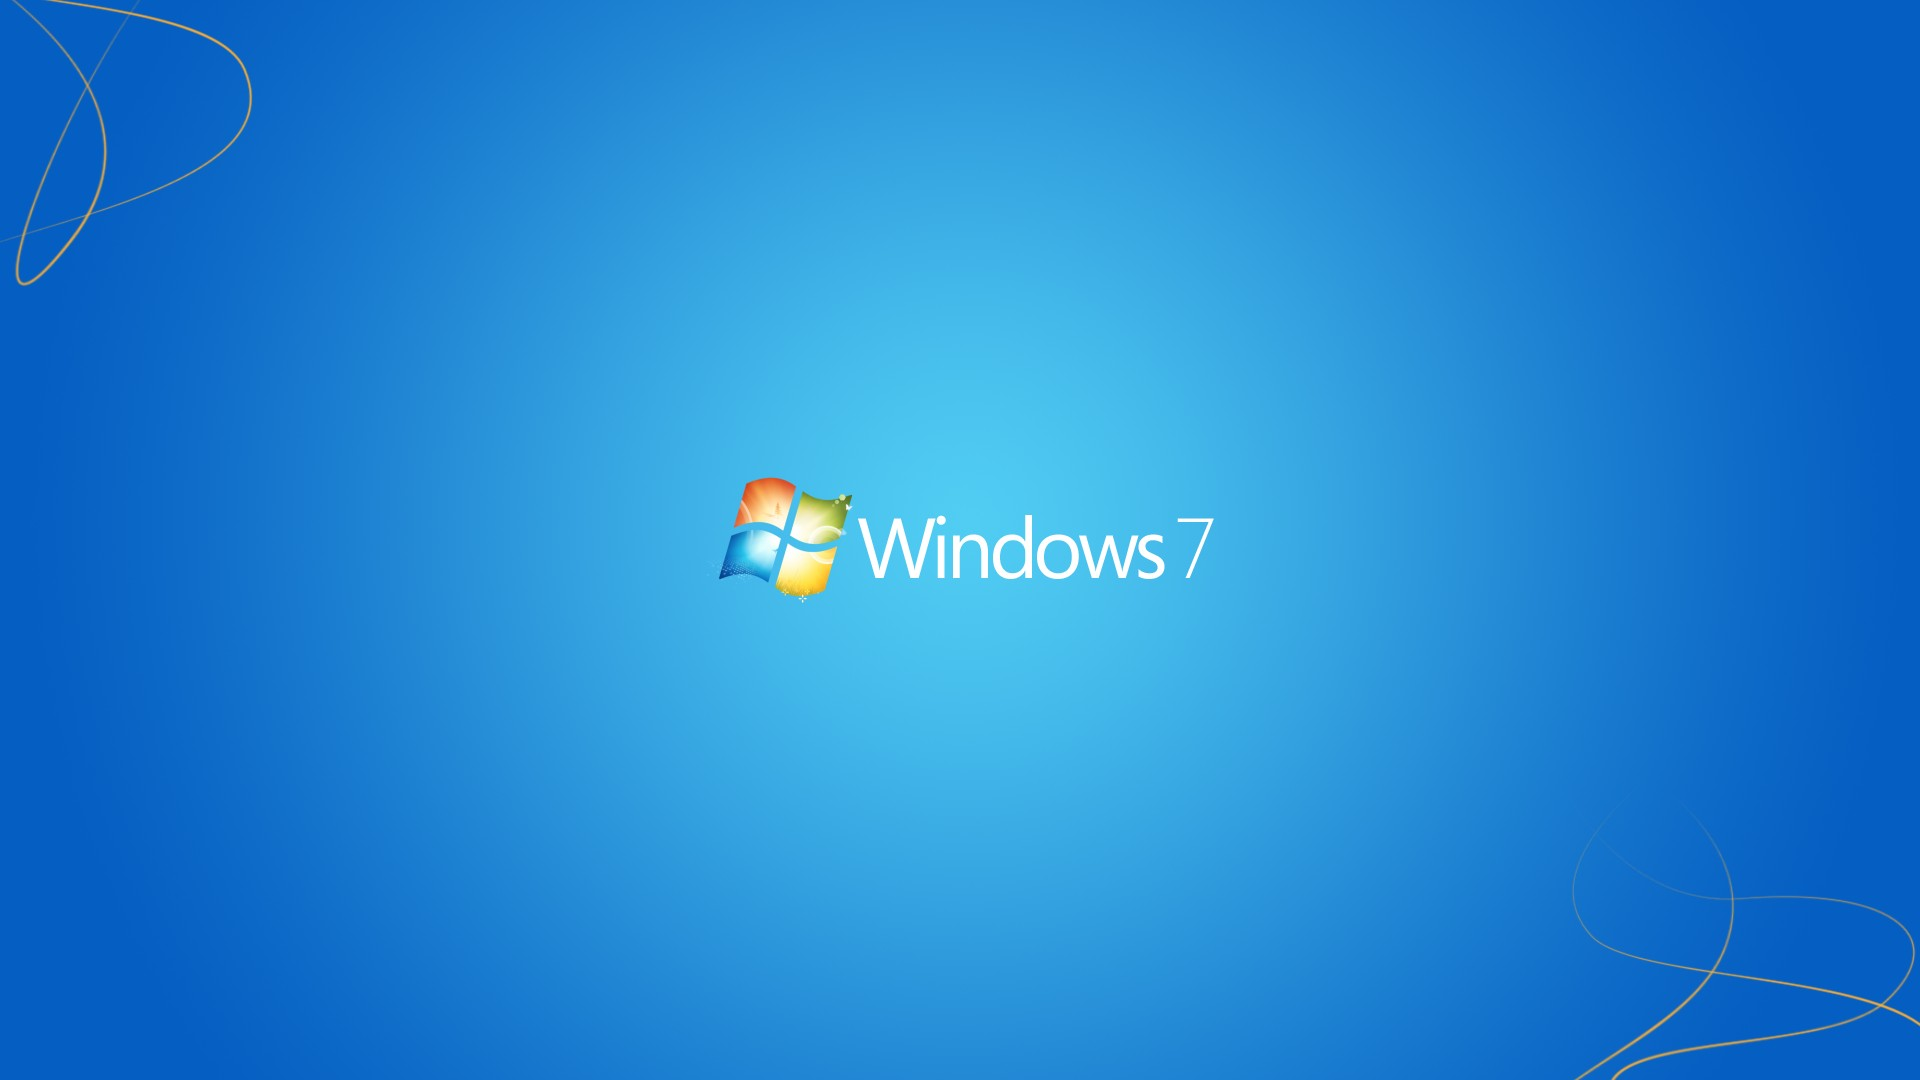 Free Download Windows 7 Wallpapers Top Windows 7 Backgrounds